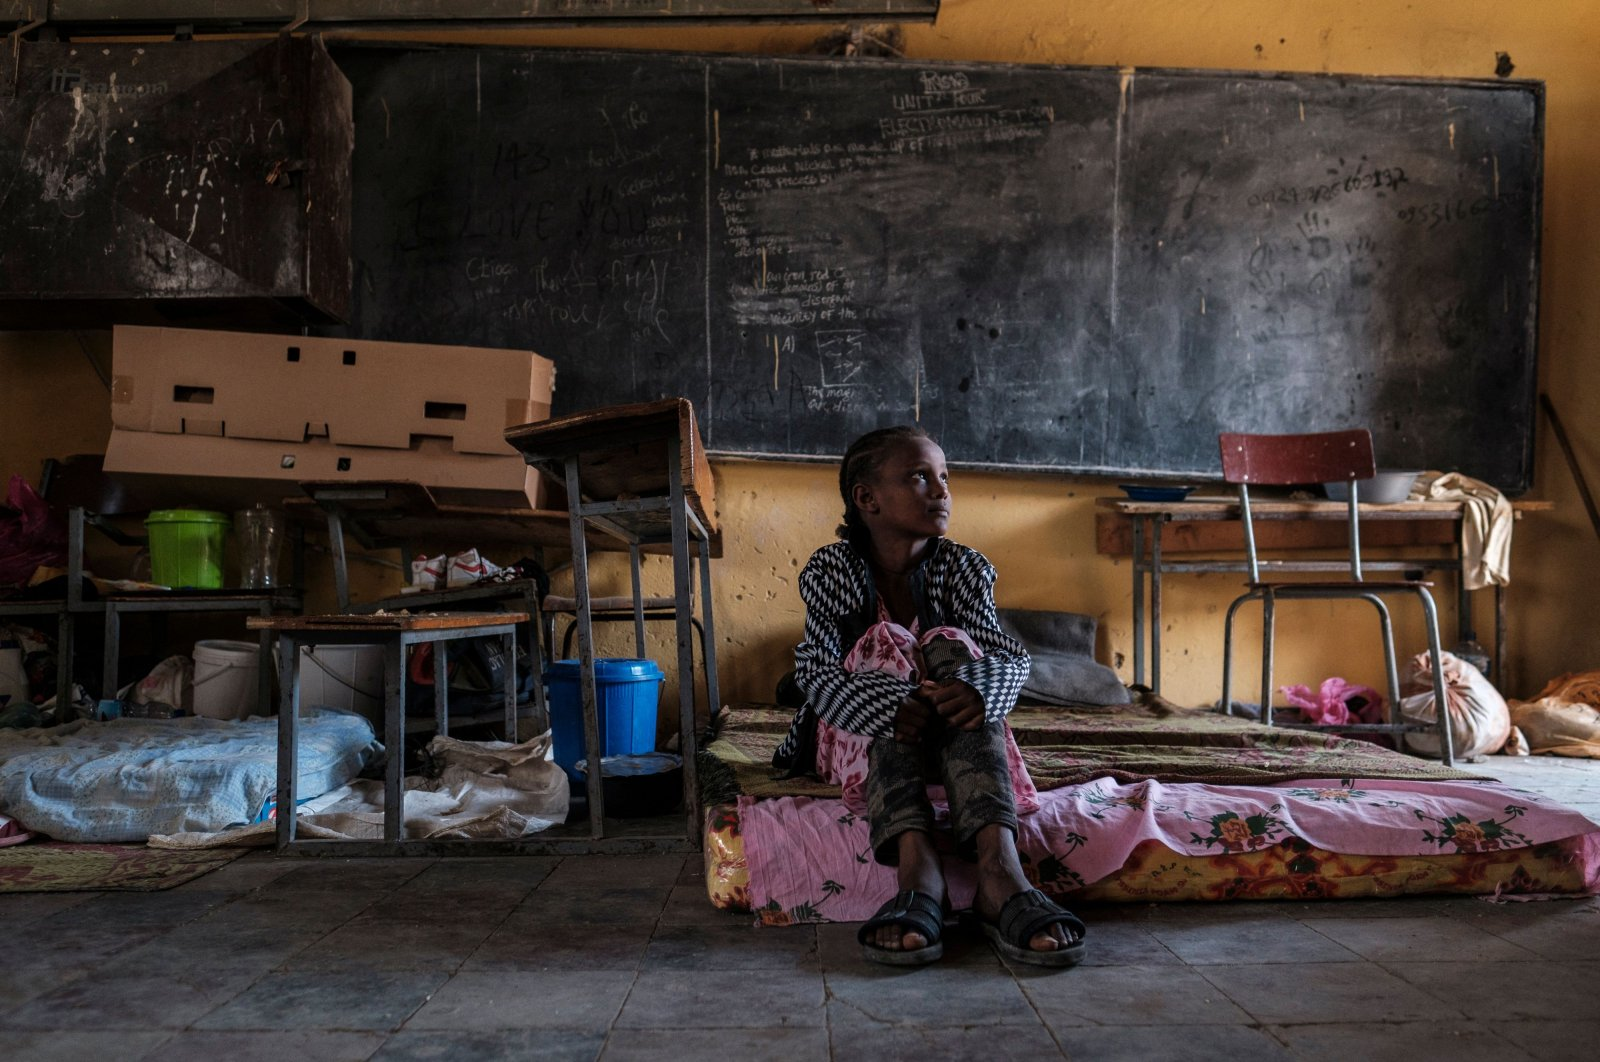 A displaced girl from Western Tigray sits on a mattress in a classroom at the school where she is sheltering in Tigray's capital Mekele, Ethiopia, Feb. 24, 2021. (AFP Photo)